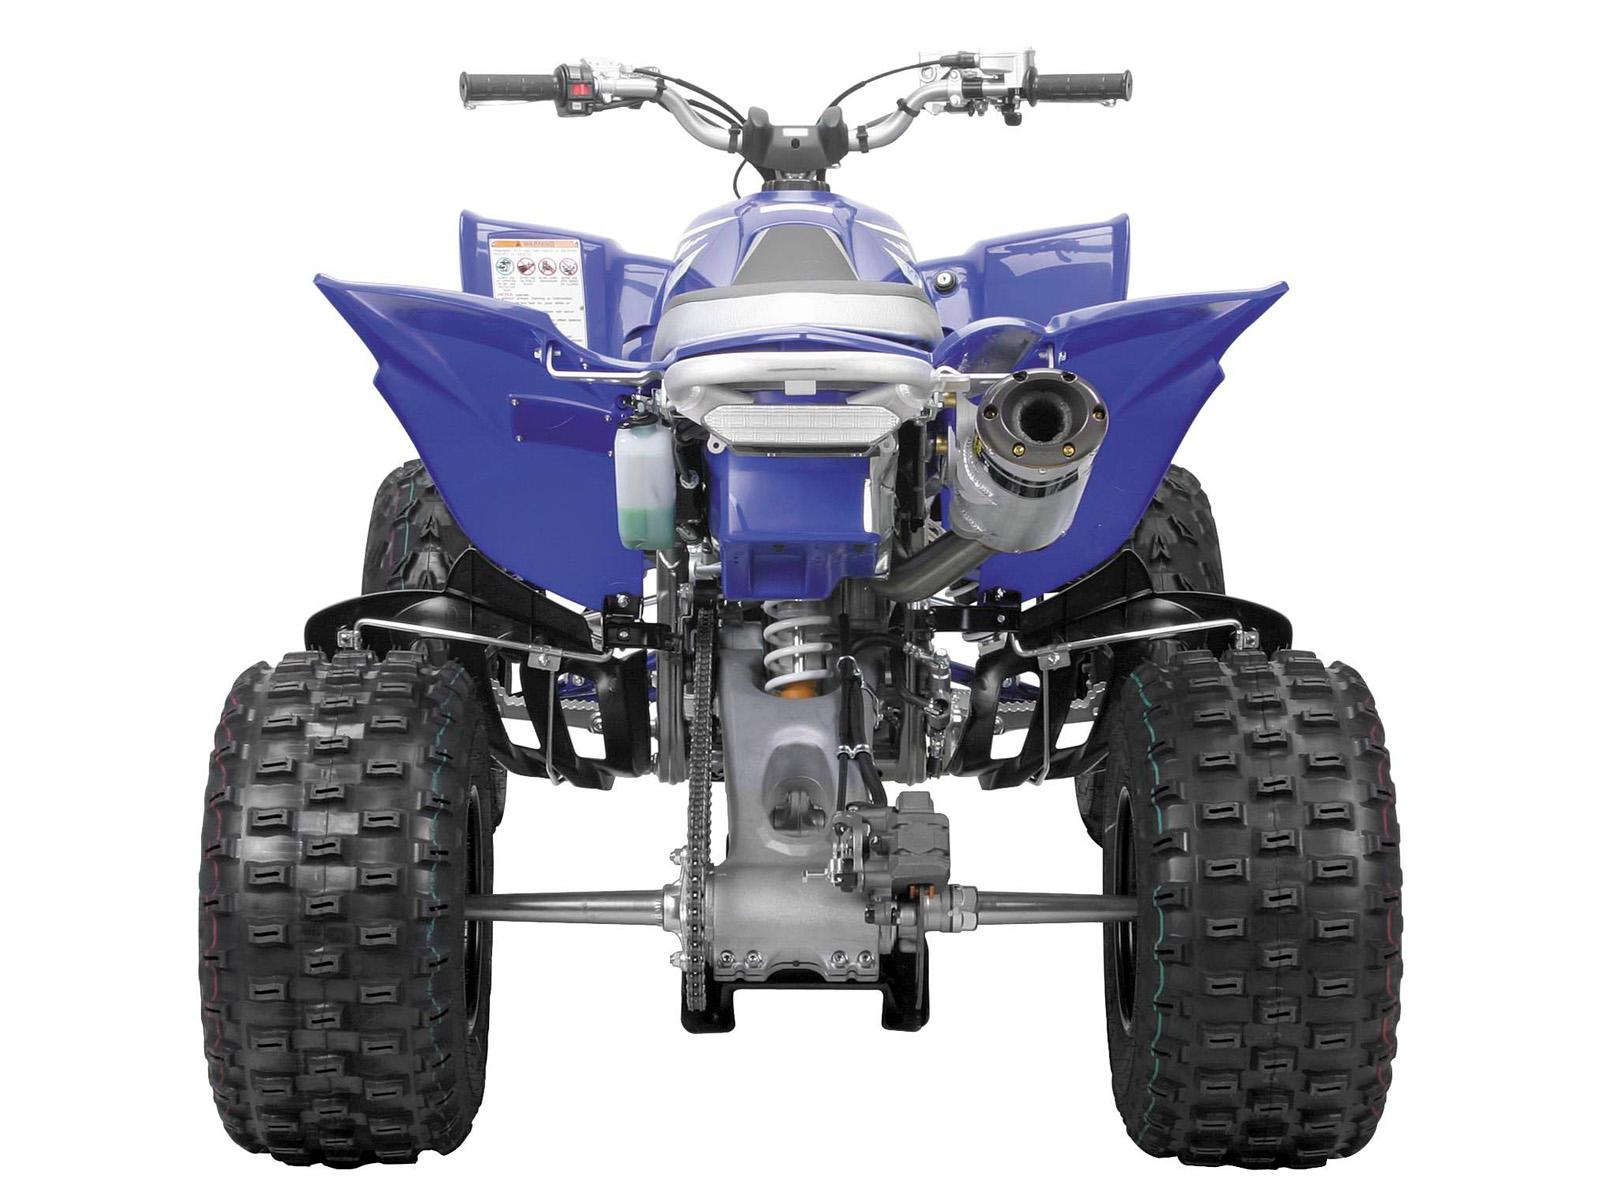 ATV Exhaust Systems: